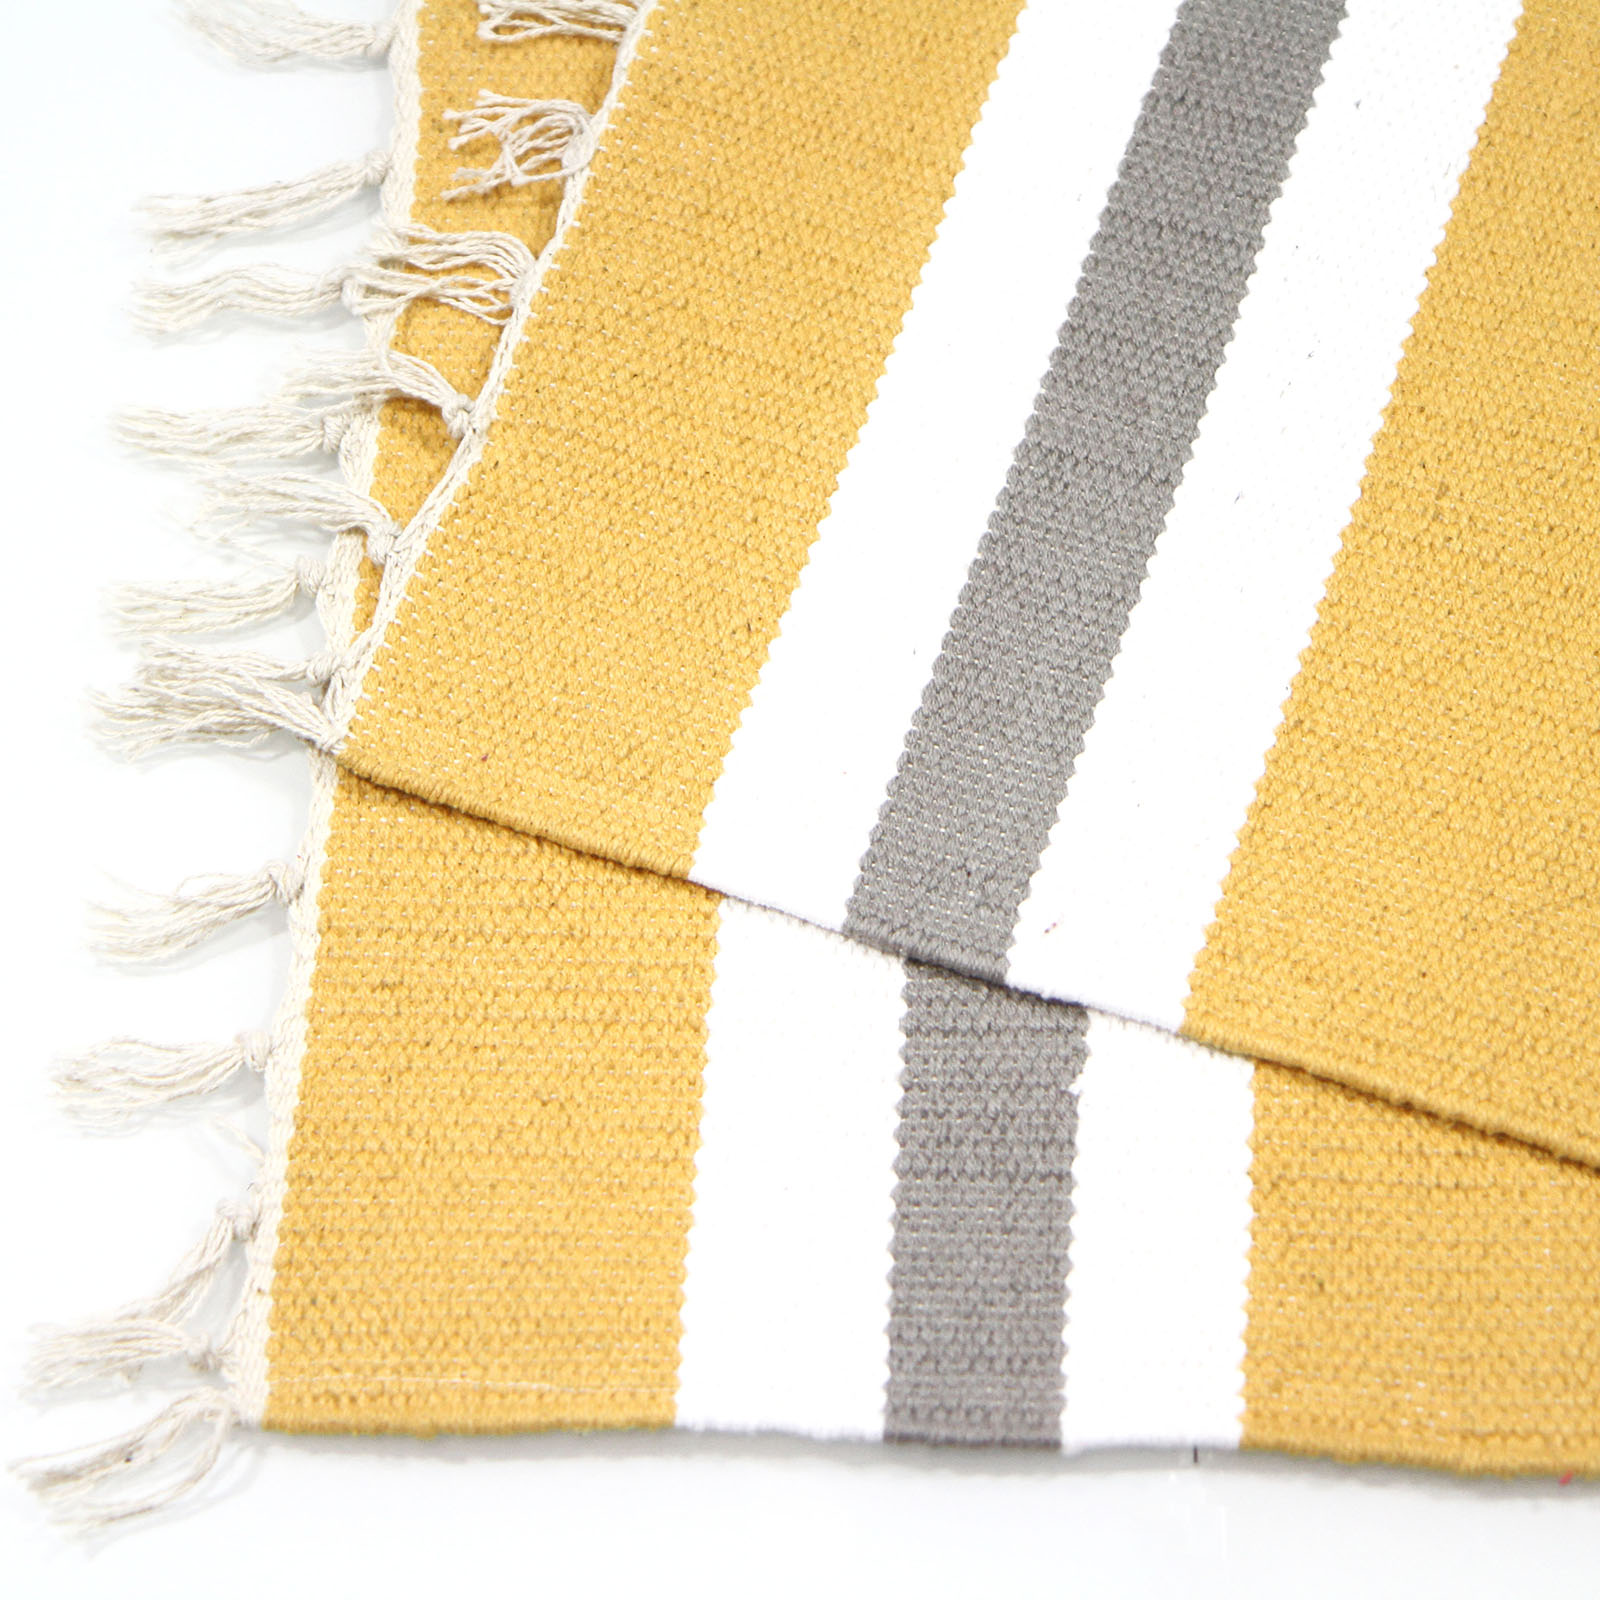 Colourful 100 % Cotton Striped Flat Woven Rug